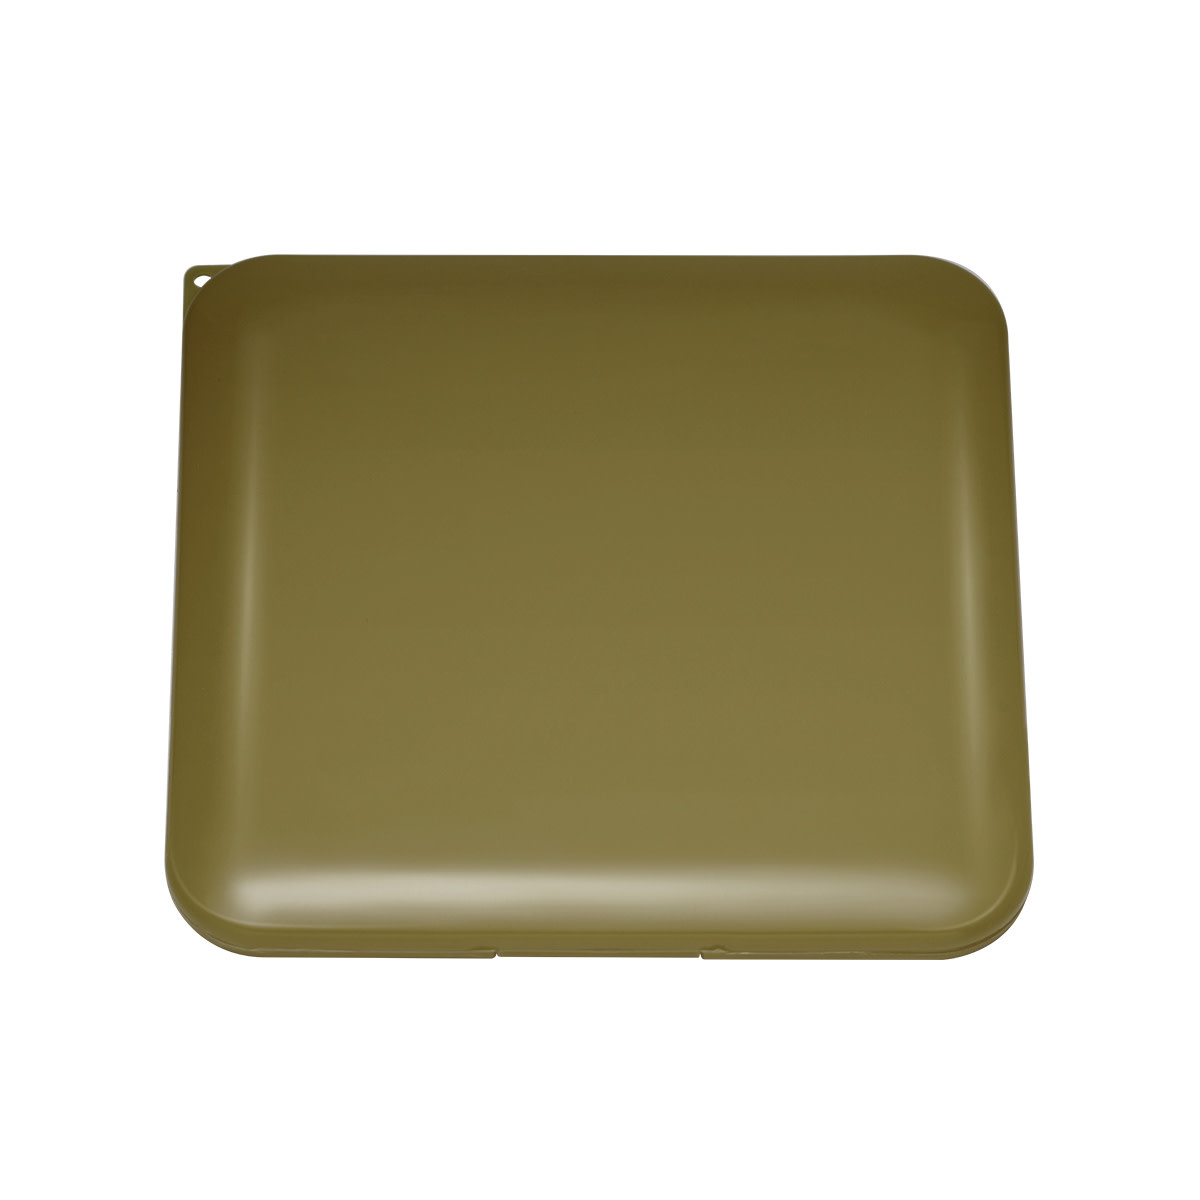 With love Portable face mask holder - khaki green